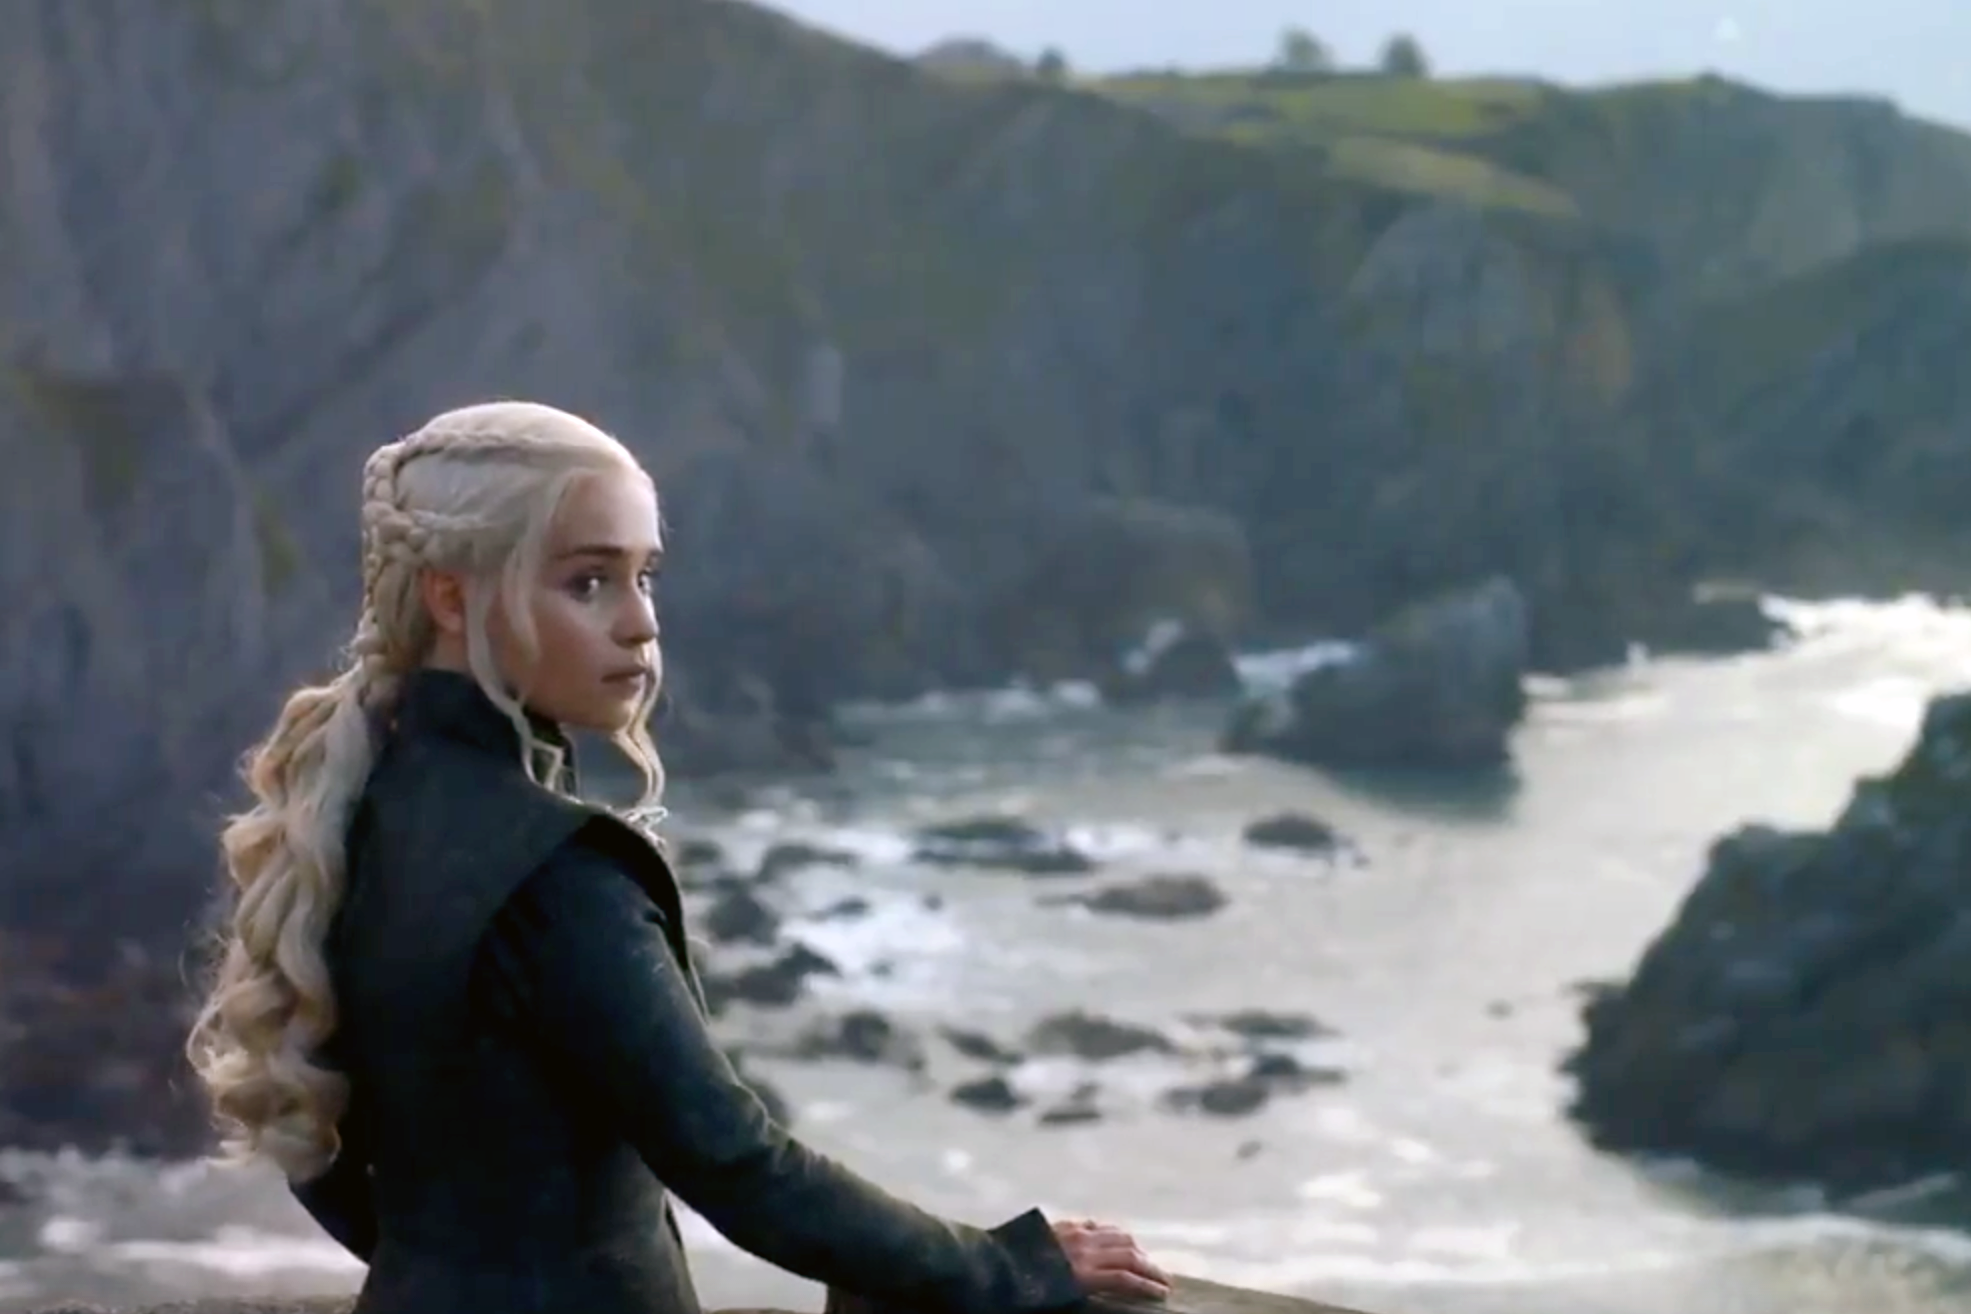 Game of Thrones Season 7 Comic-Con Trailer: Dany Meets Melisandre